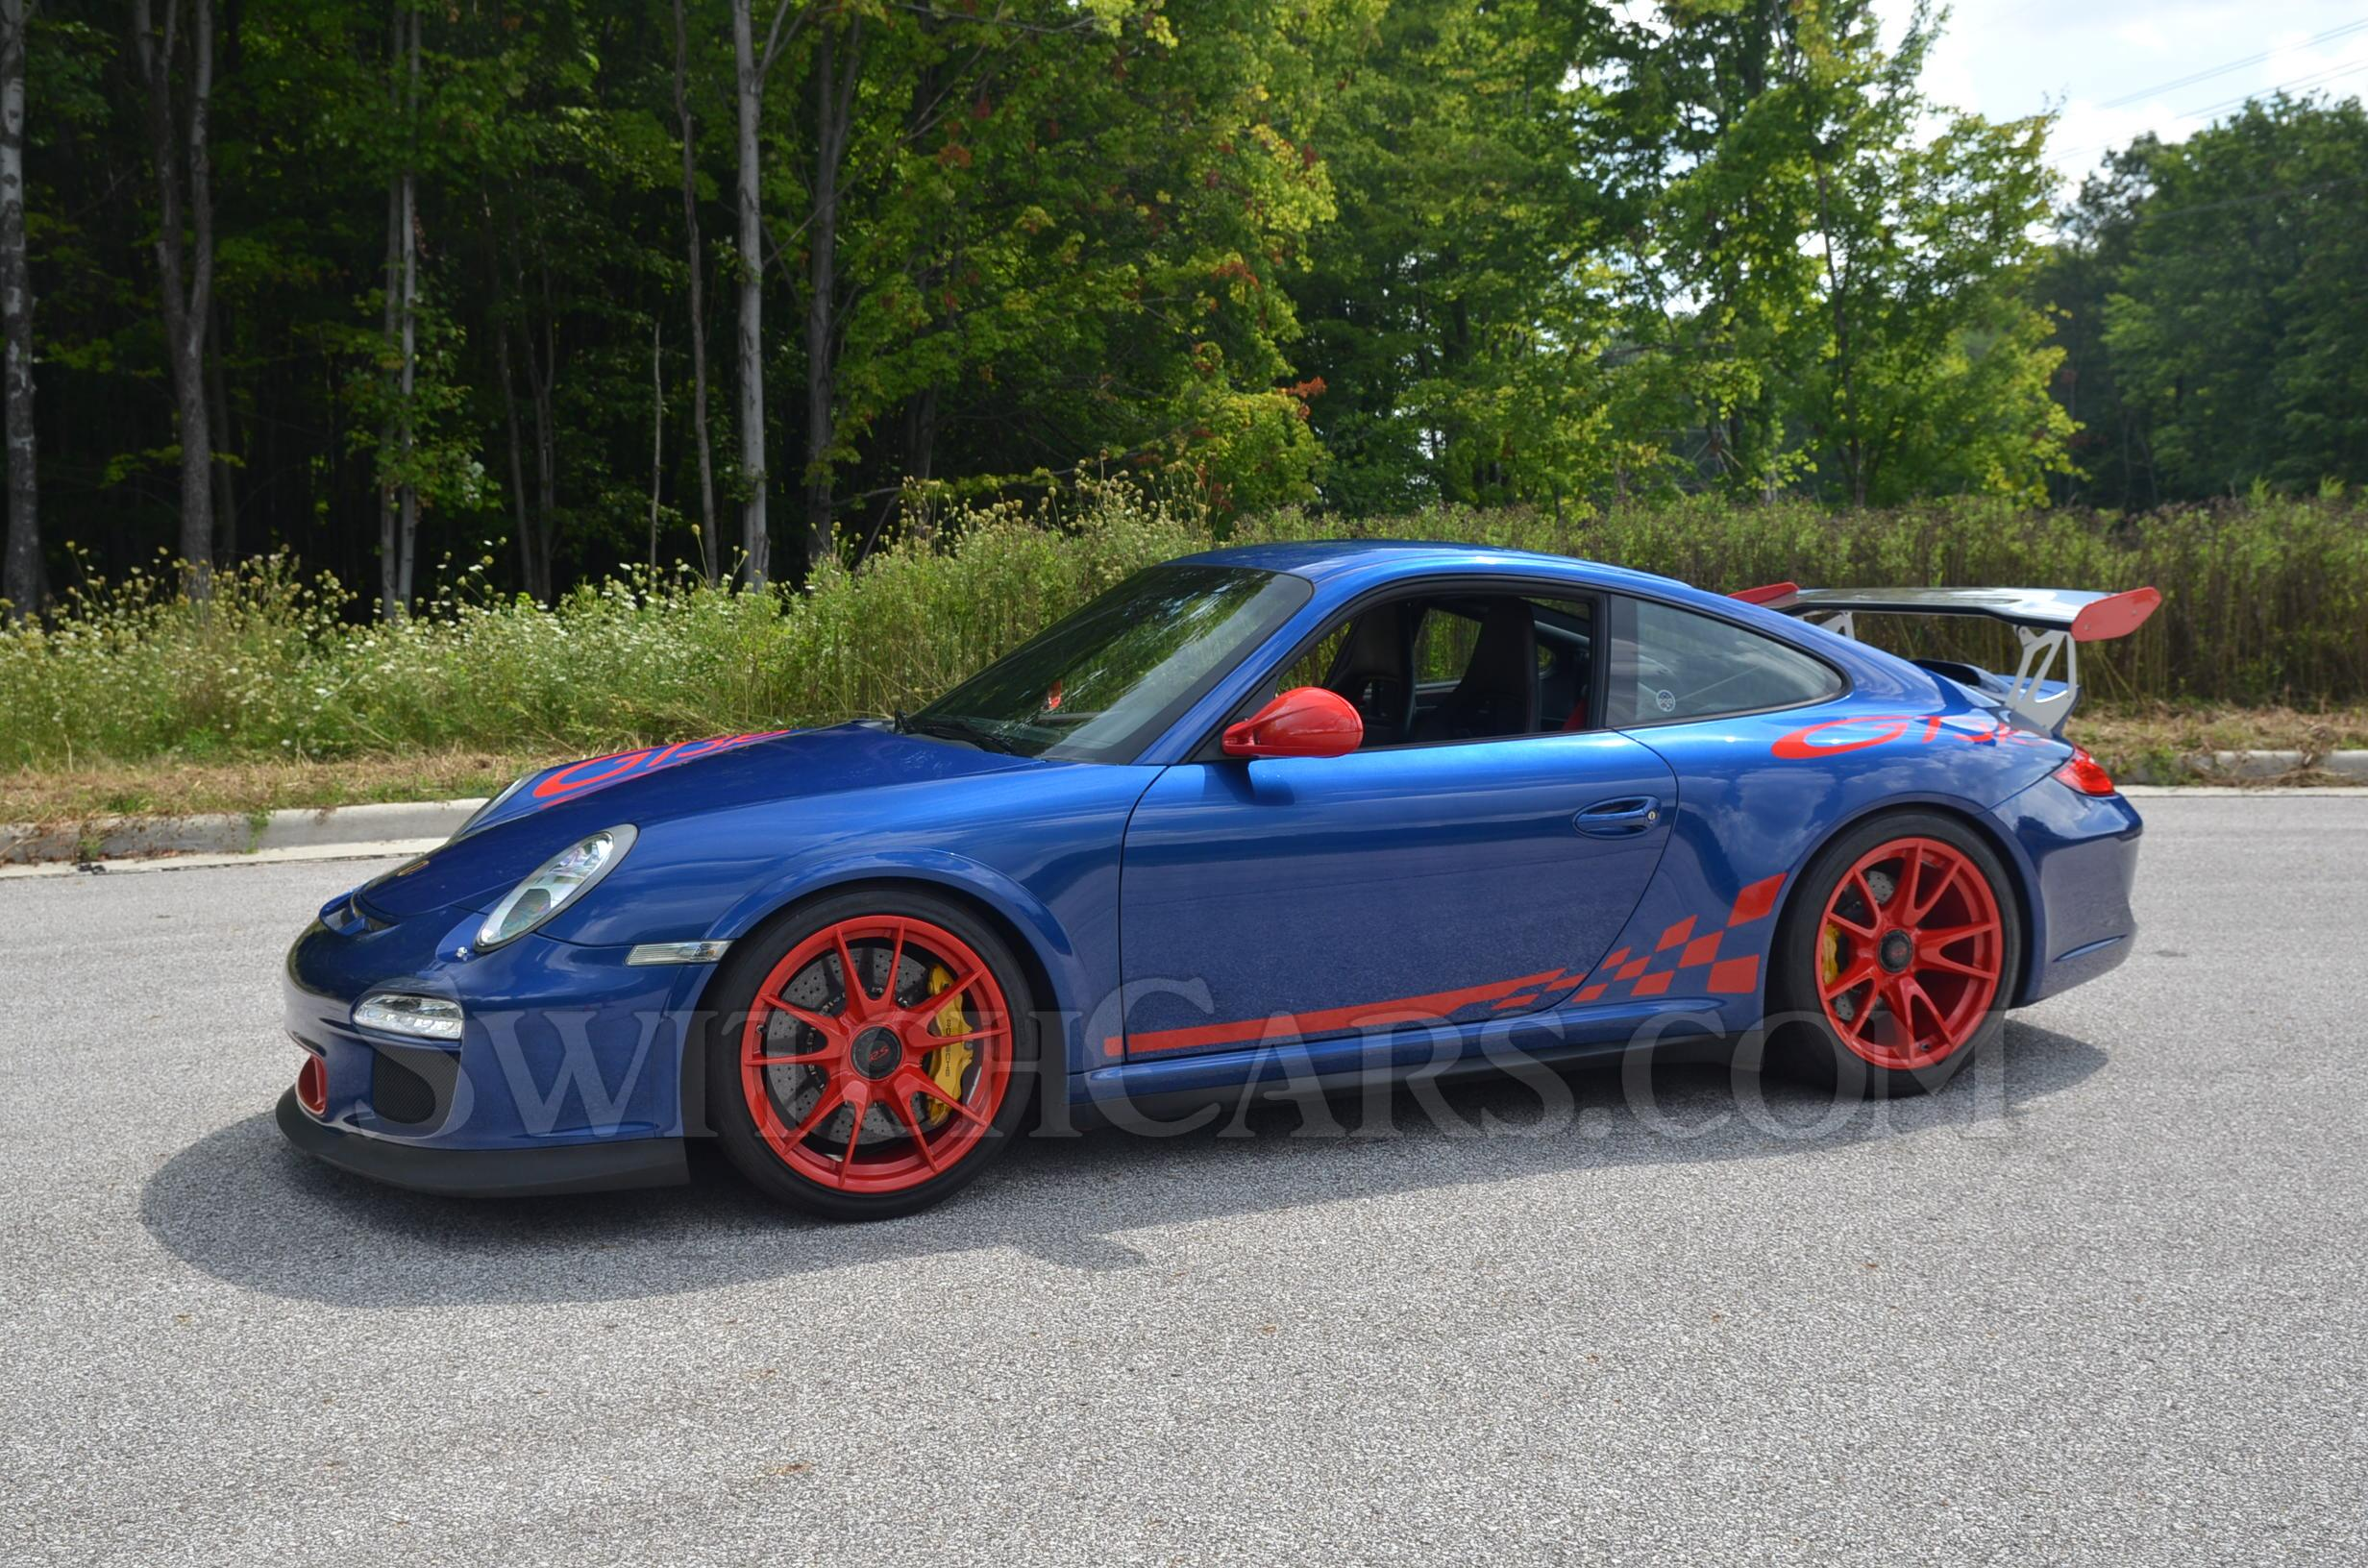 2010 Porsche 911 Gt3 Rs At Switchcars Inc Sold